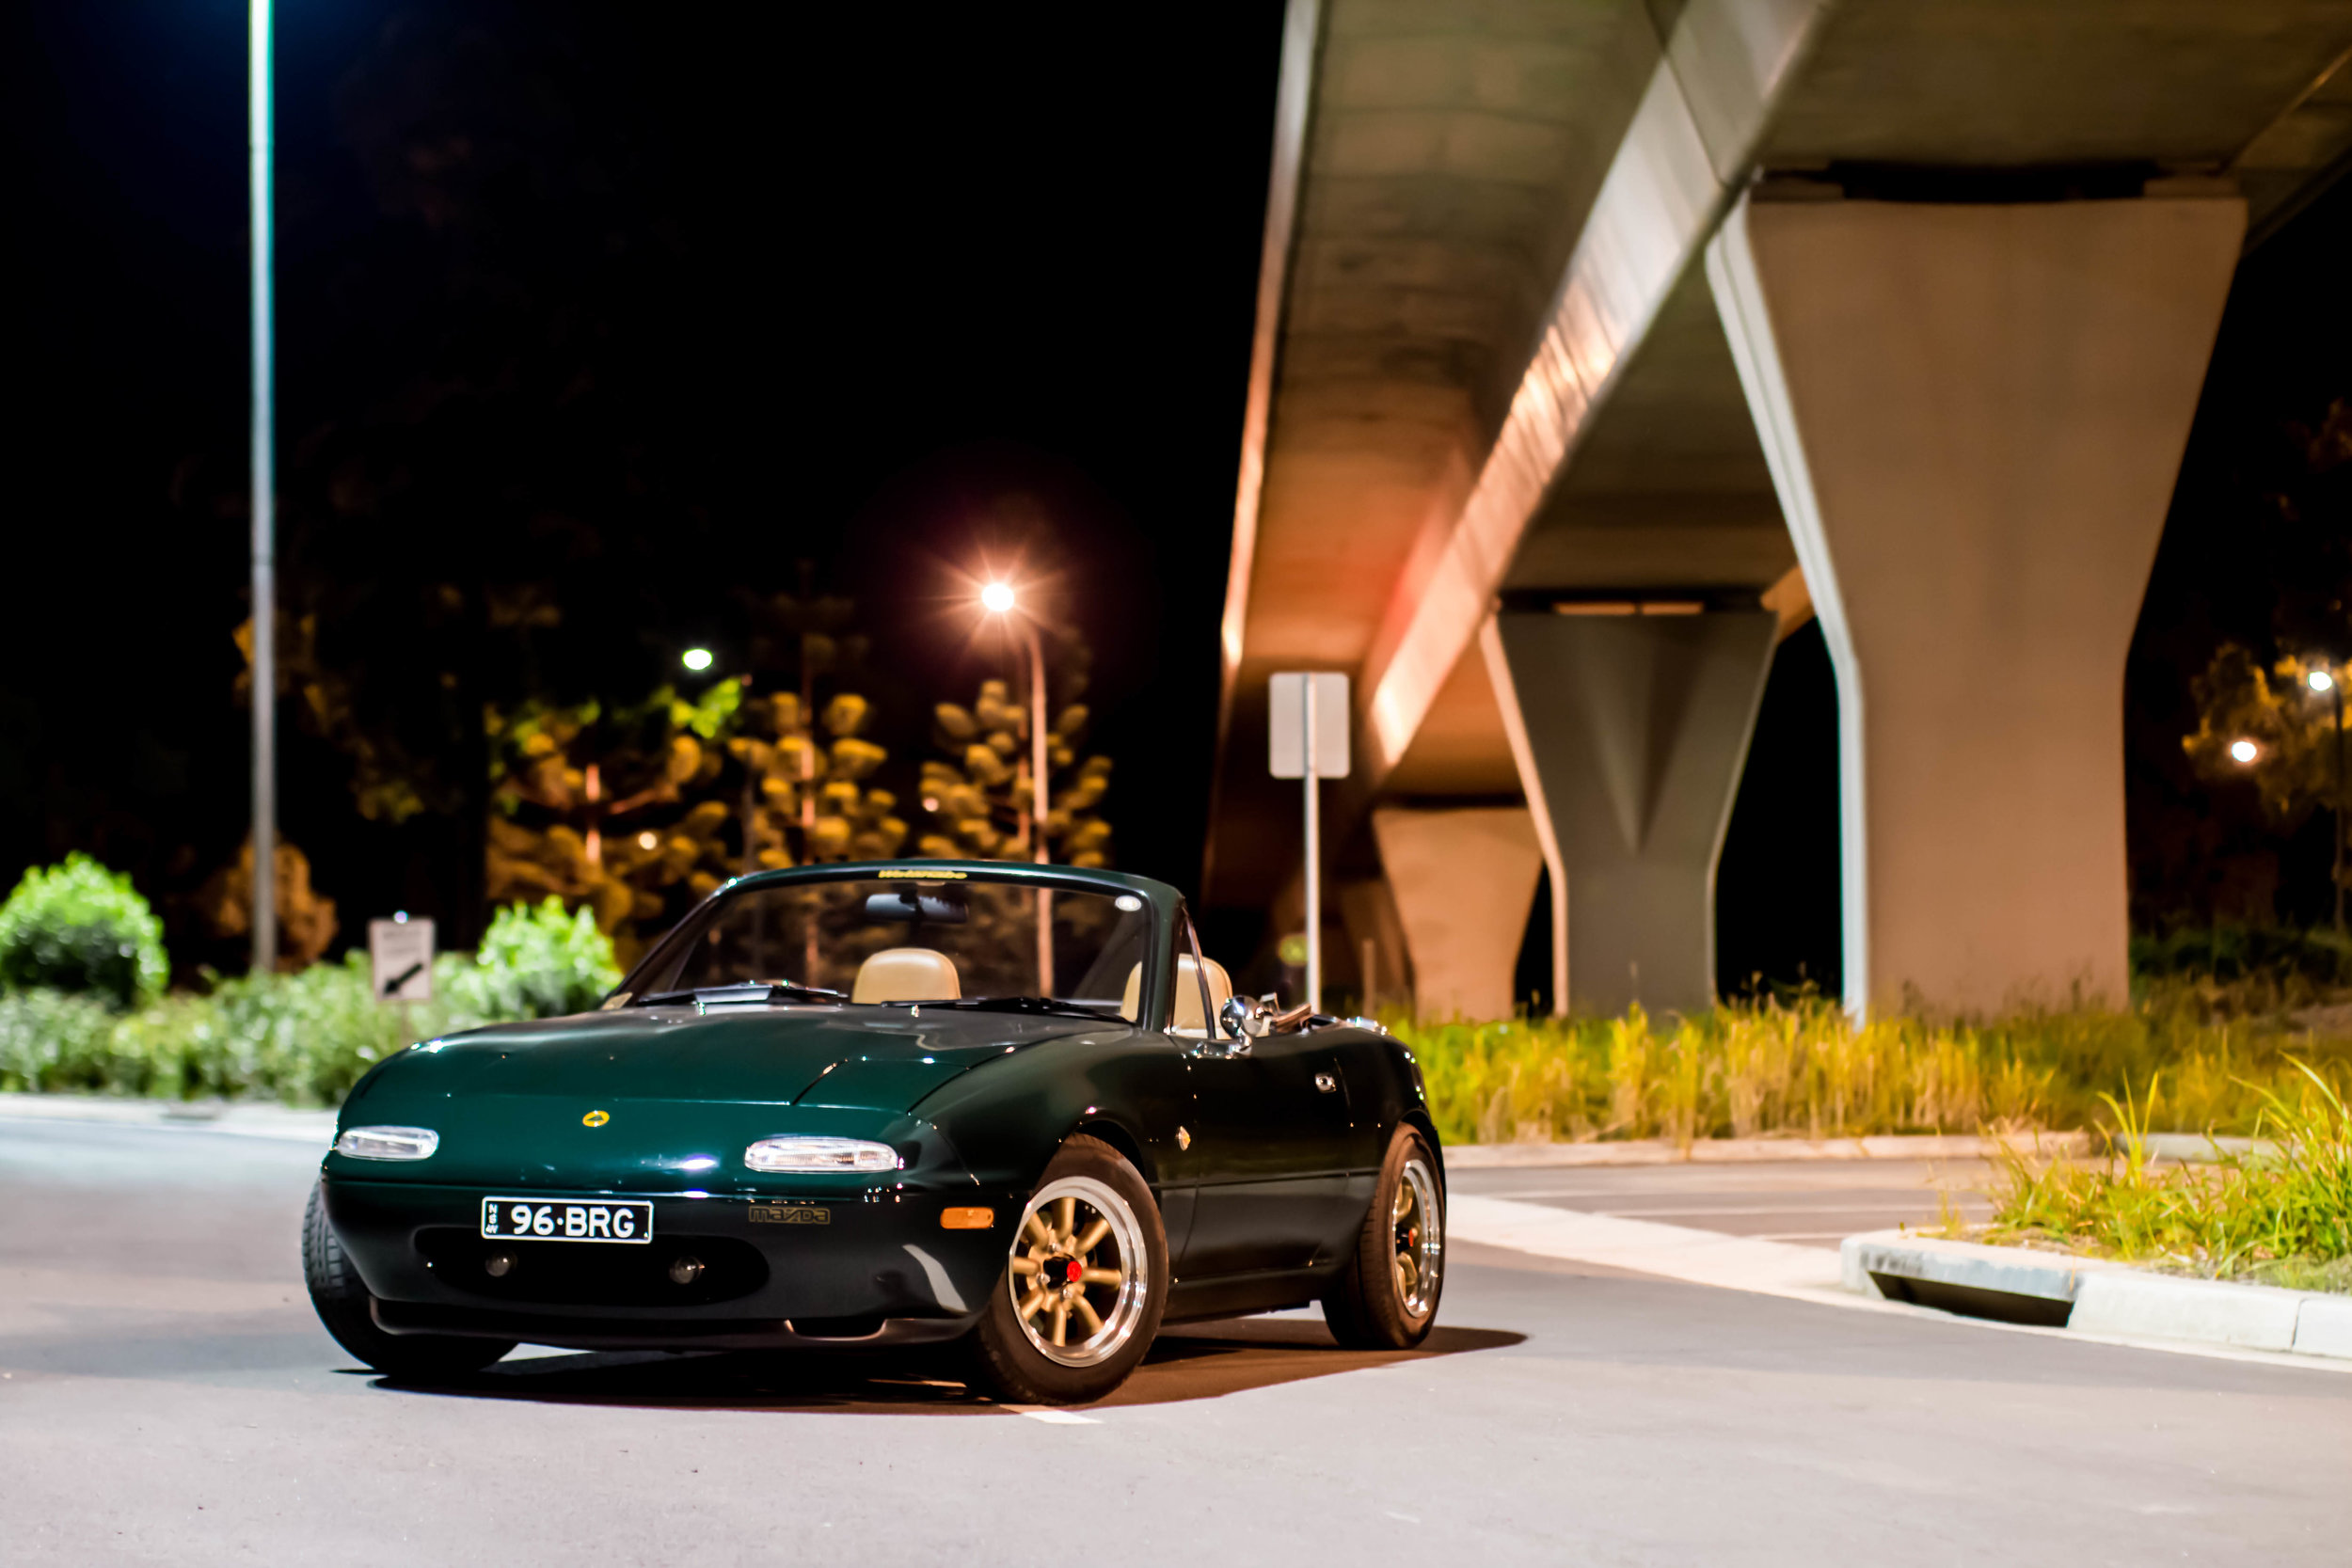 Stephen's MX-5 pointing out of the shot. Although a great shot, there is still improvement to be had. If the car was angled in, it would really amplify this shot.